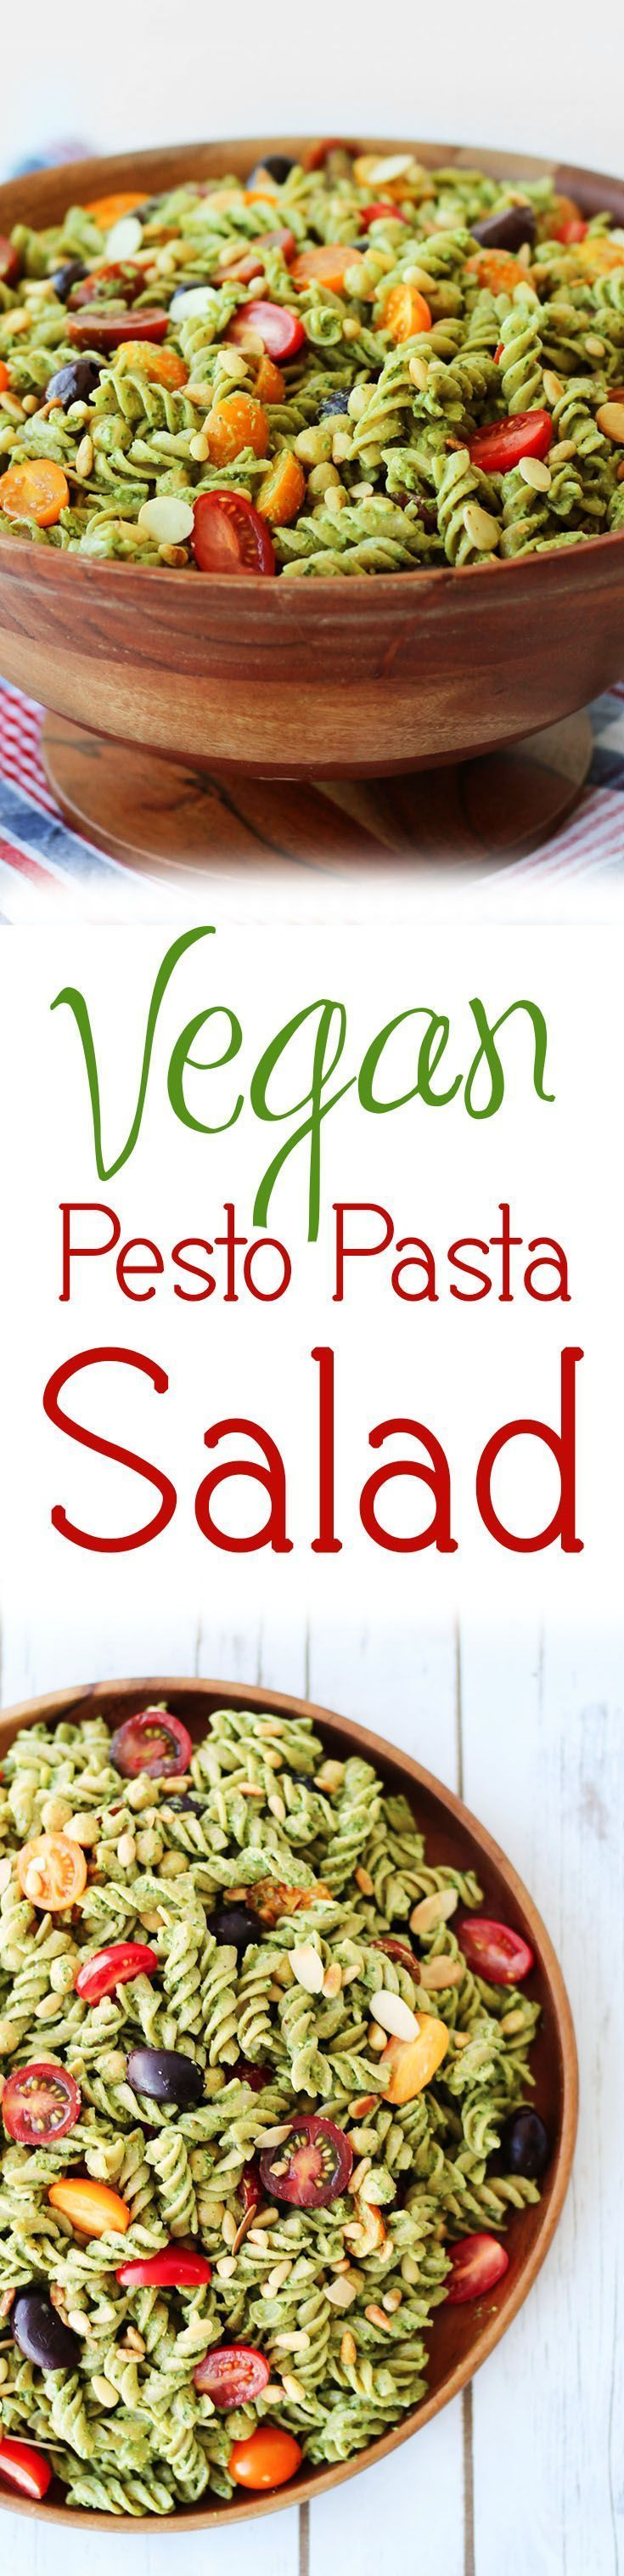 This vegan pesto gluten free pasta salad will be a hit at any Summer BBQ, cook-out or family potluck.